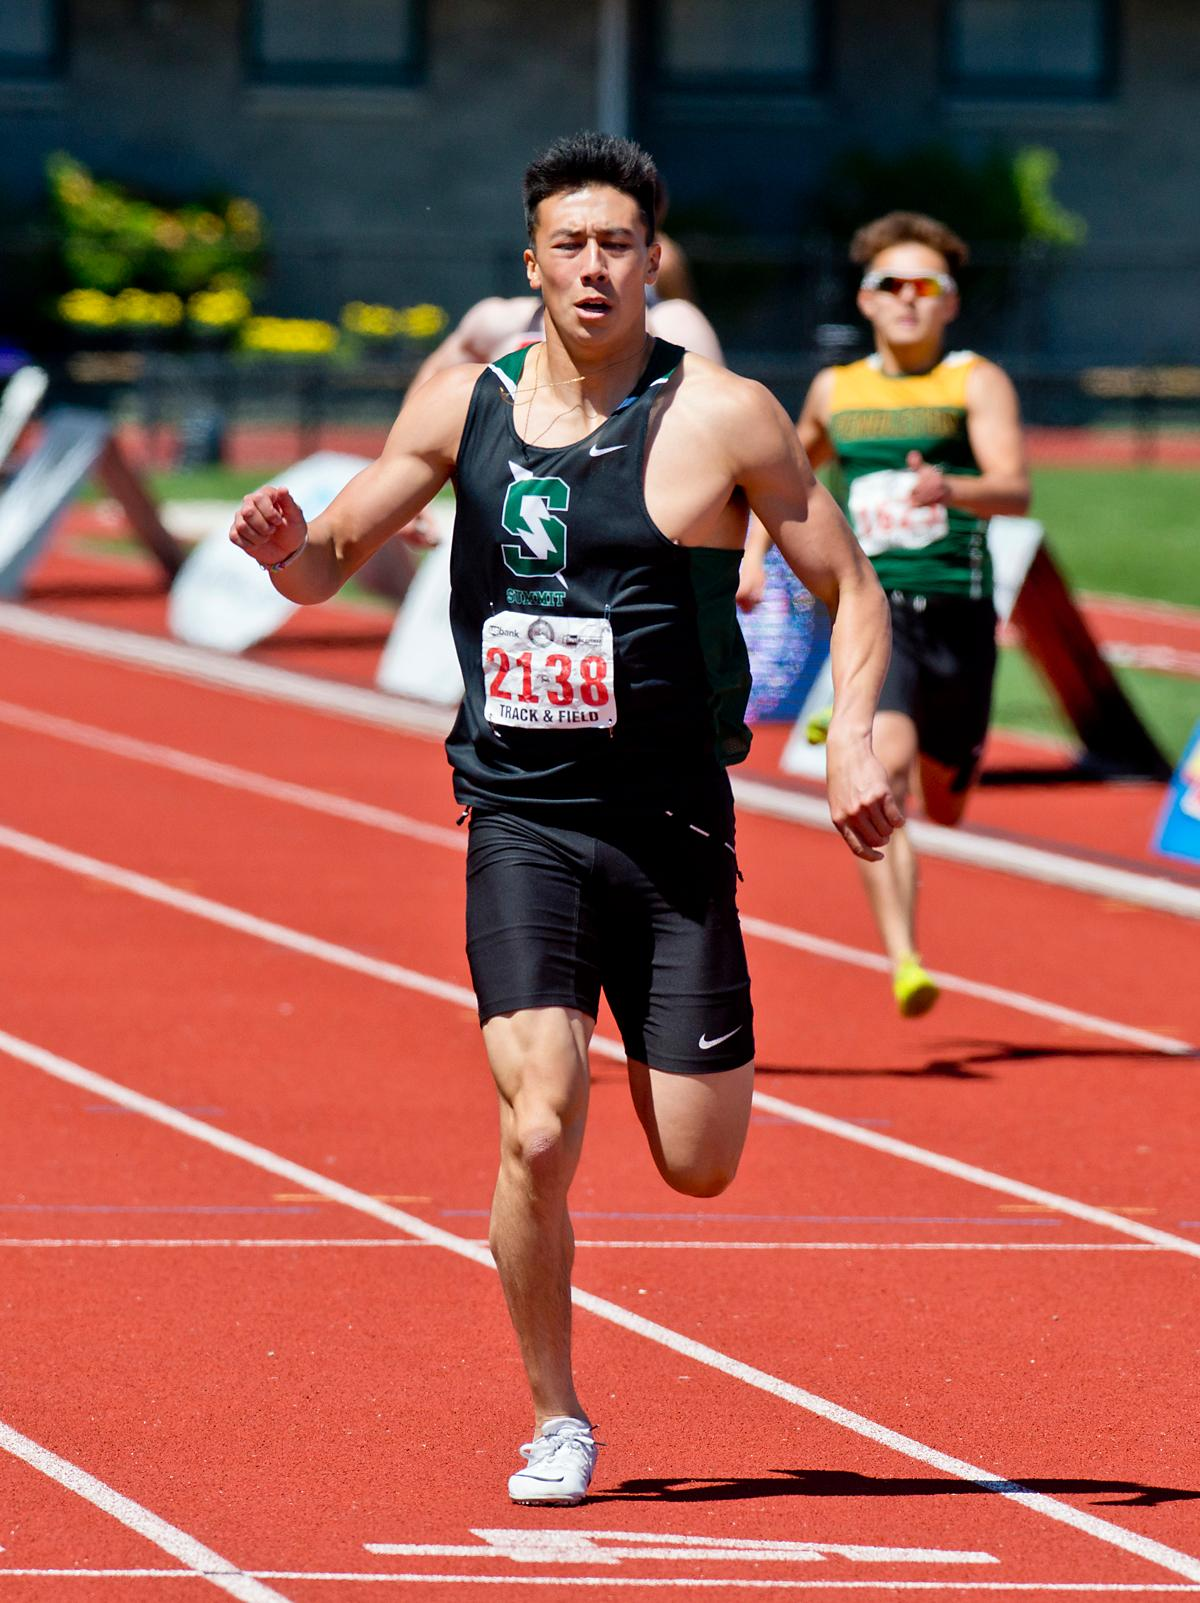 Brayden Durfee from Summit wins the 5A Boys 400 meter dash with a time of 49.22 at the OSAA Championship at Hayward Field on Saturday. Photo by Dan Morrison, Oregon News Lab